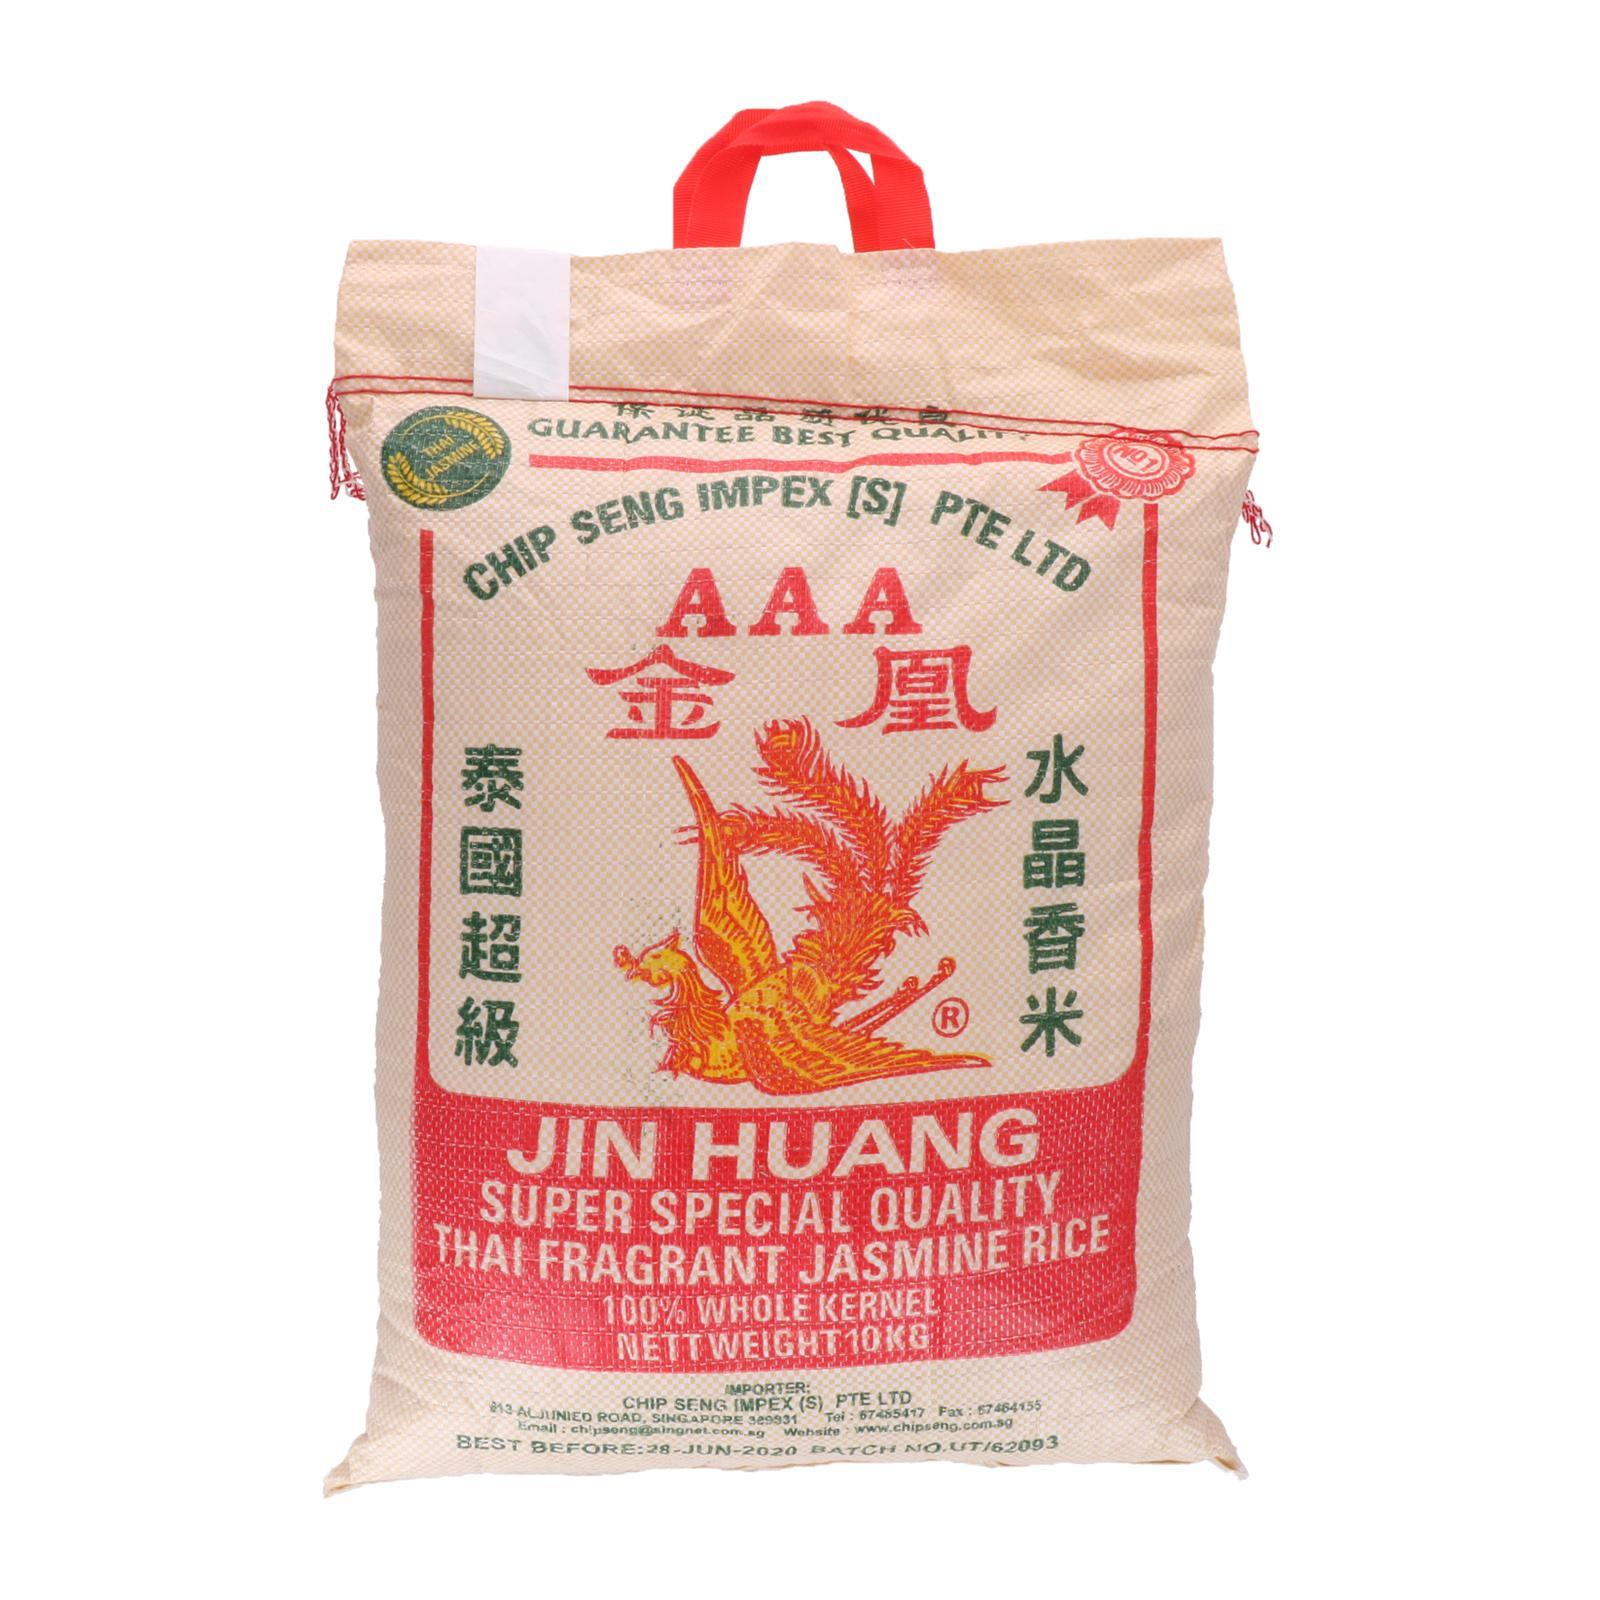 Jin Huang AAA Thai Fragrant Rice